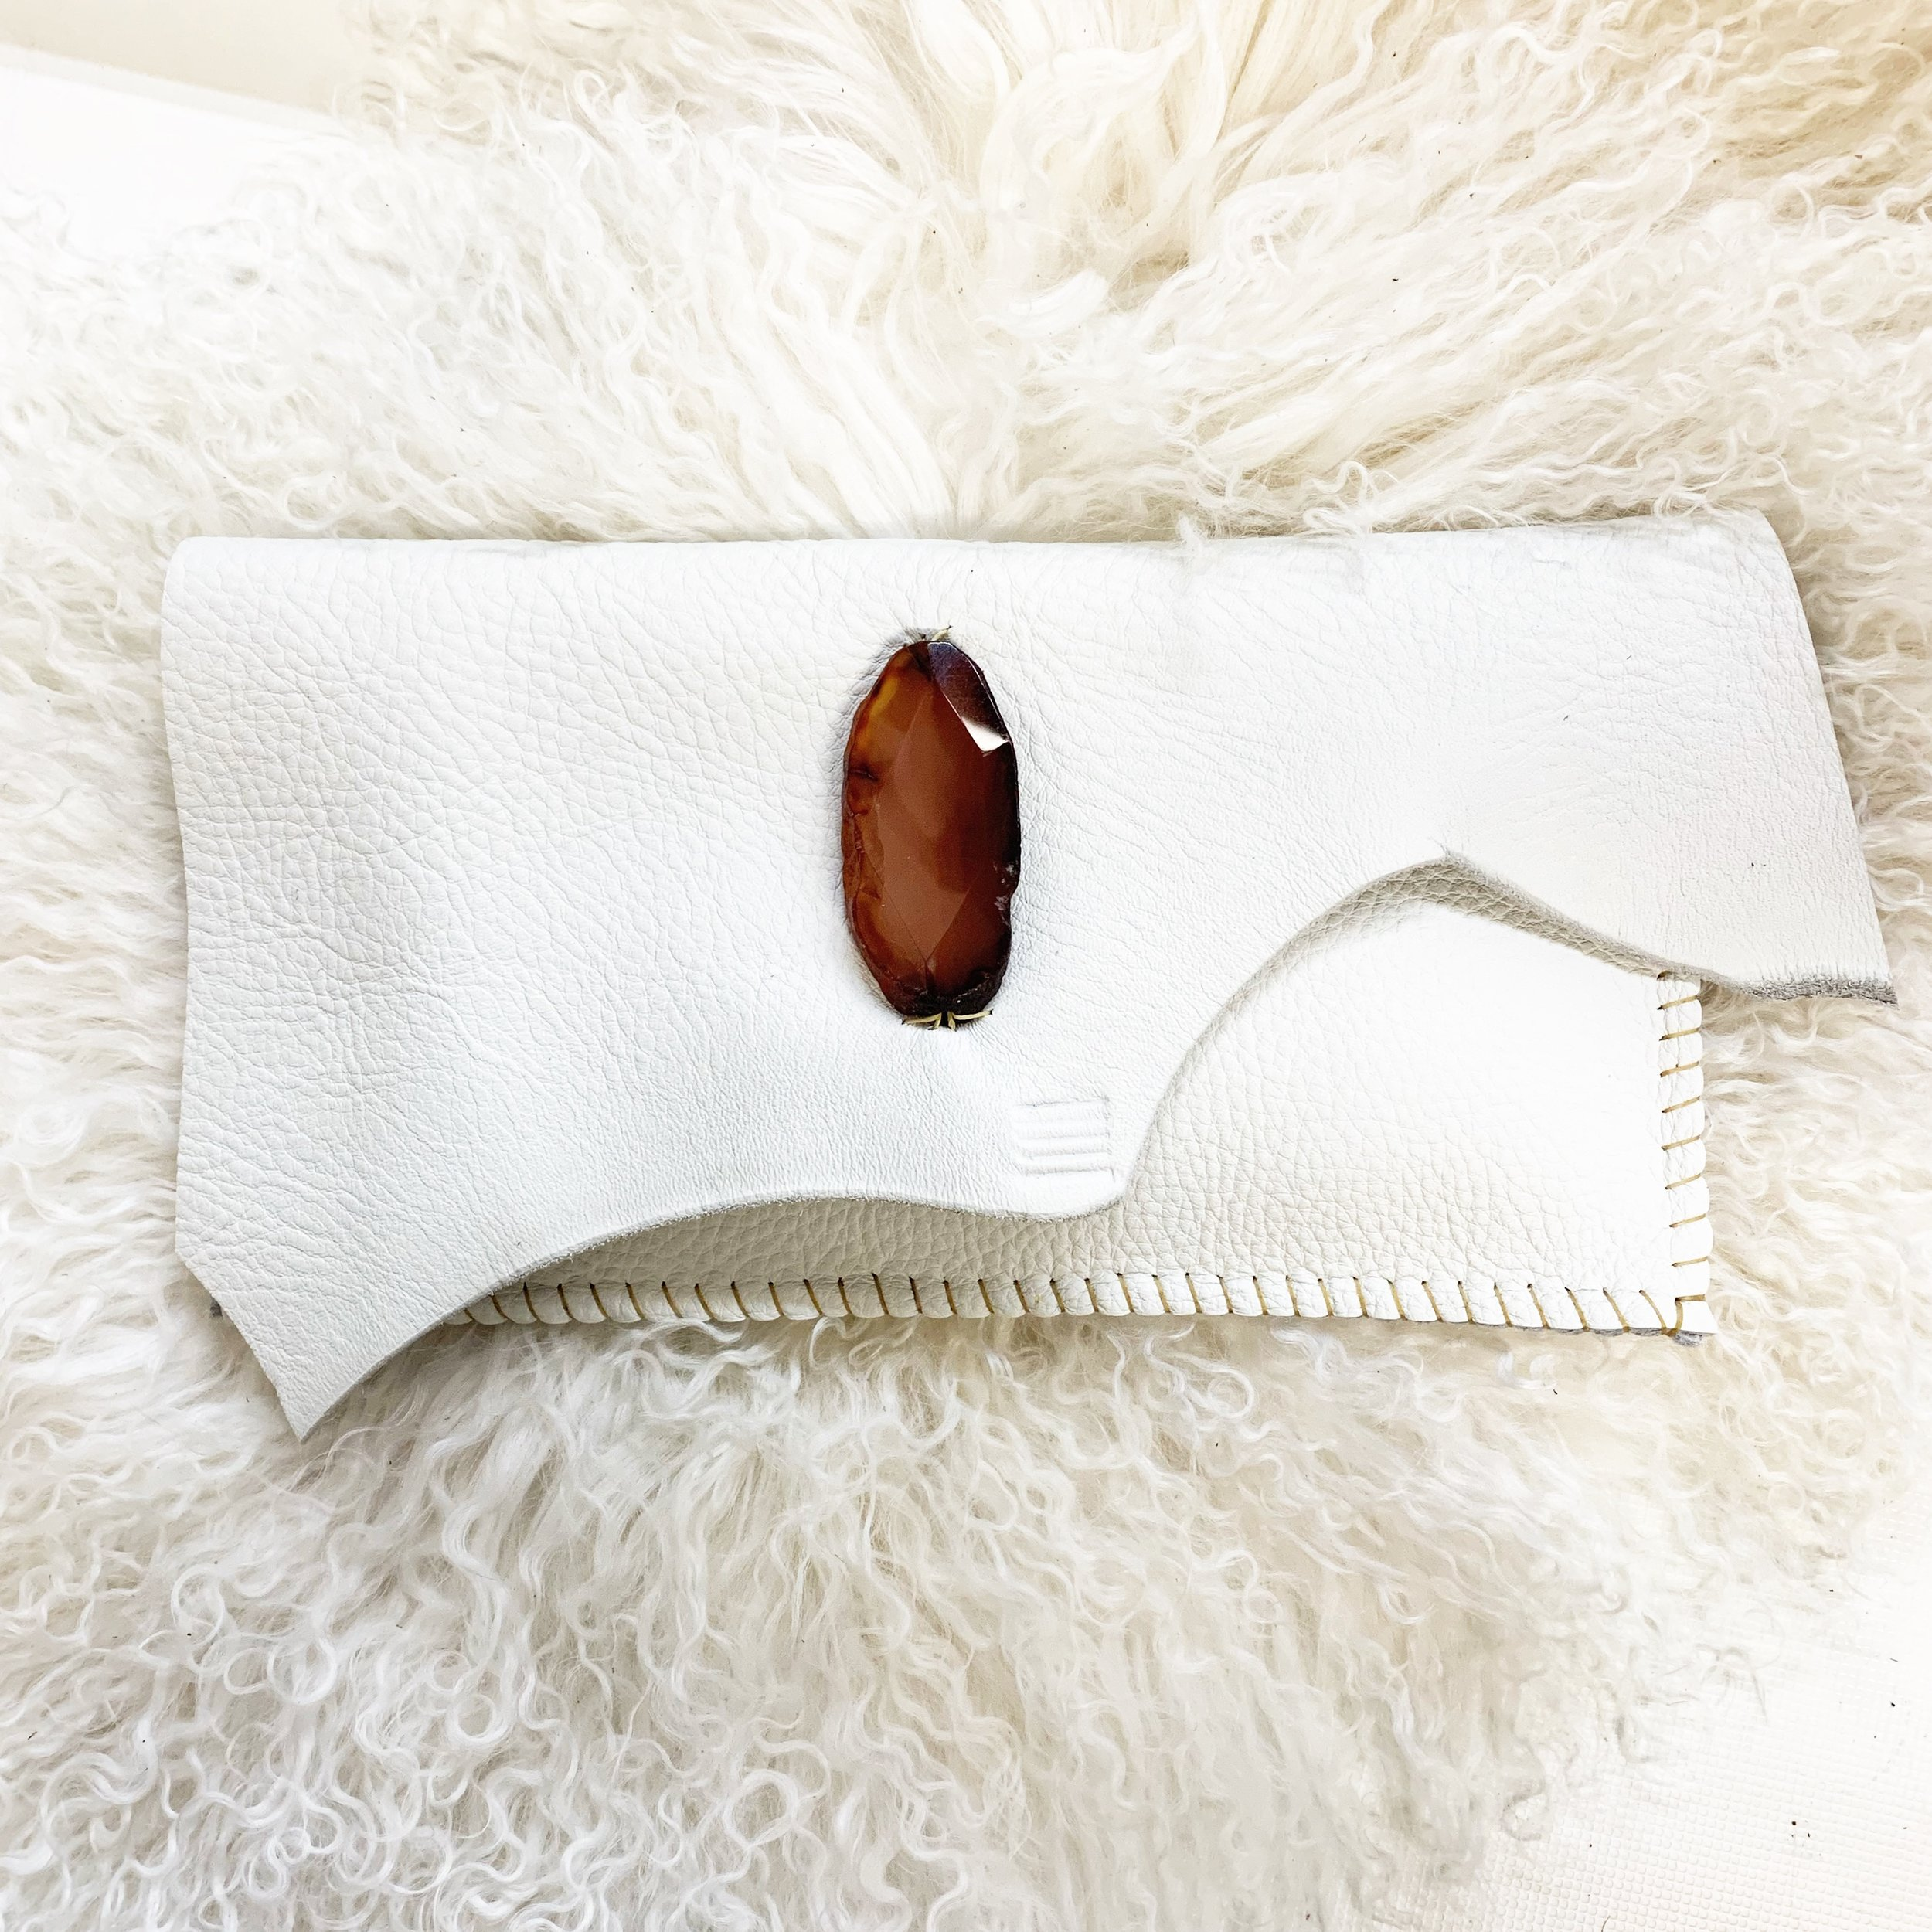 Jay Davis Bags - Bridal Studio Session - White Leather Clutch